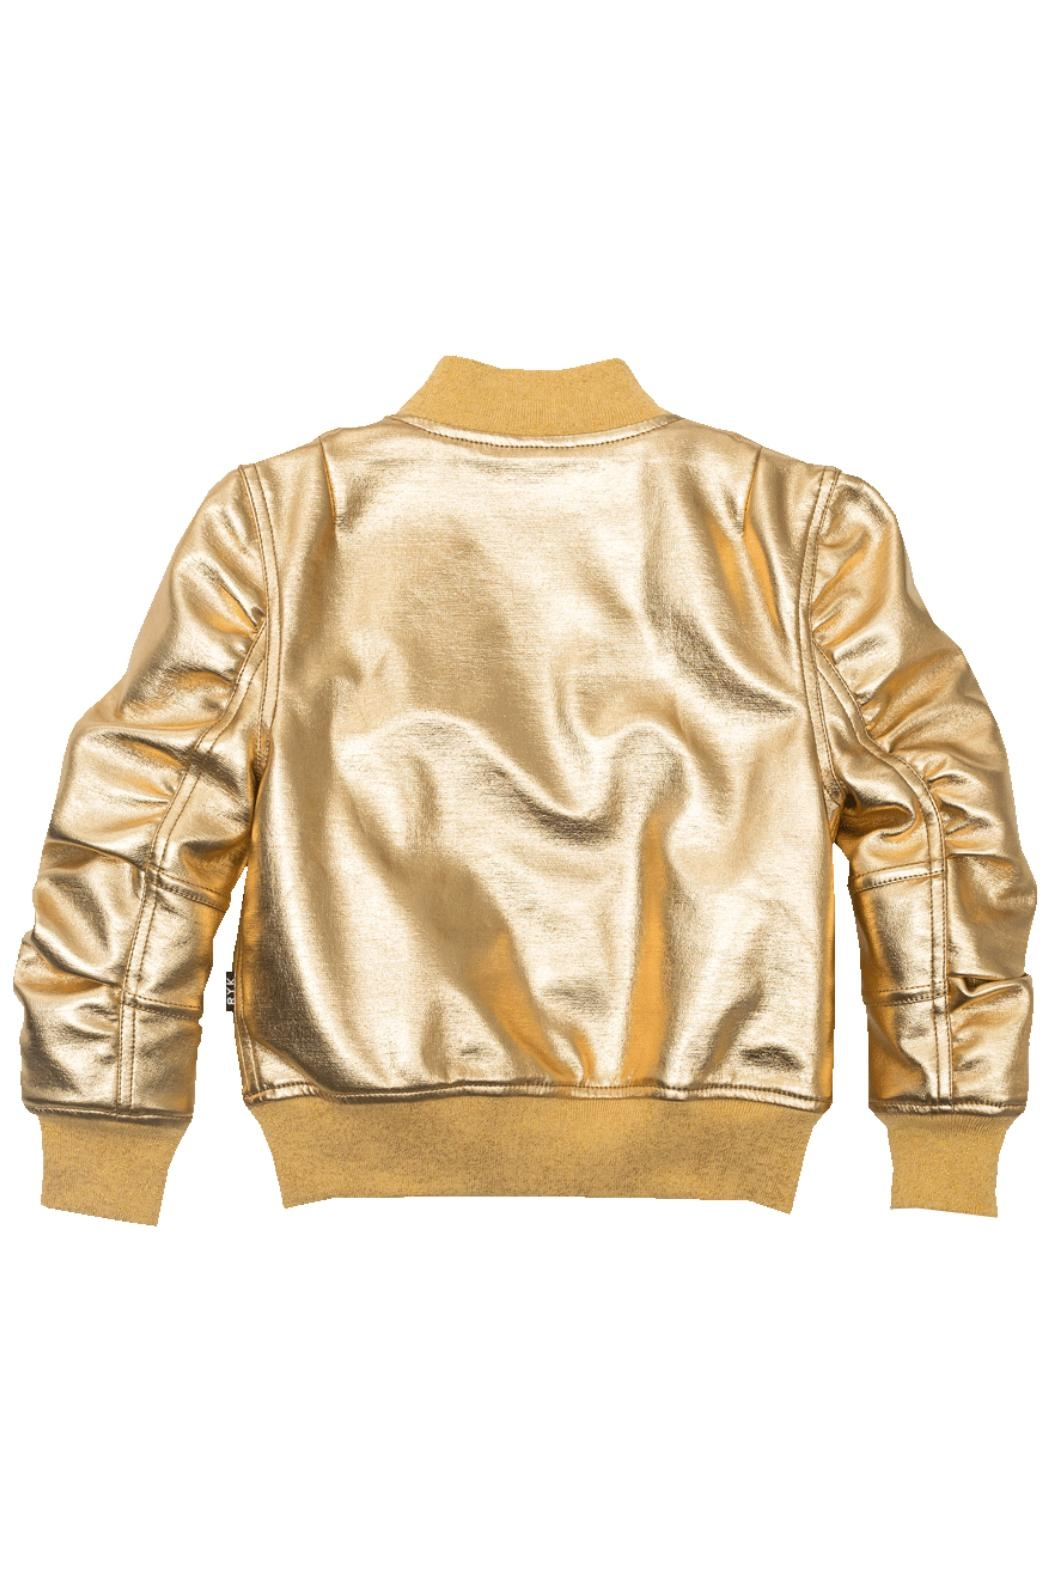 Rock Your Baby Studio 54 Jacket - Side Cropped Image